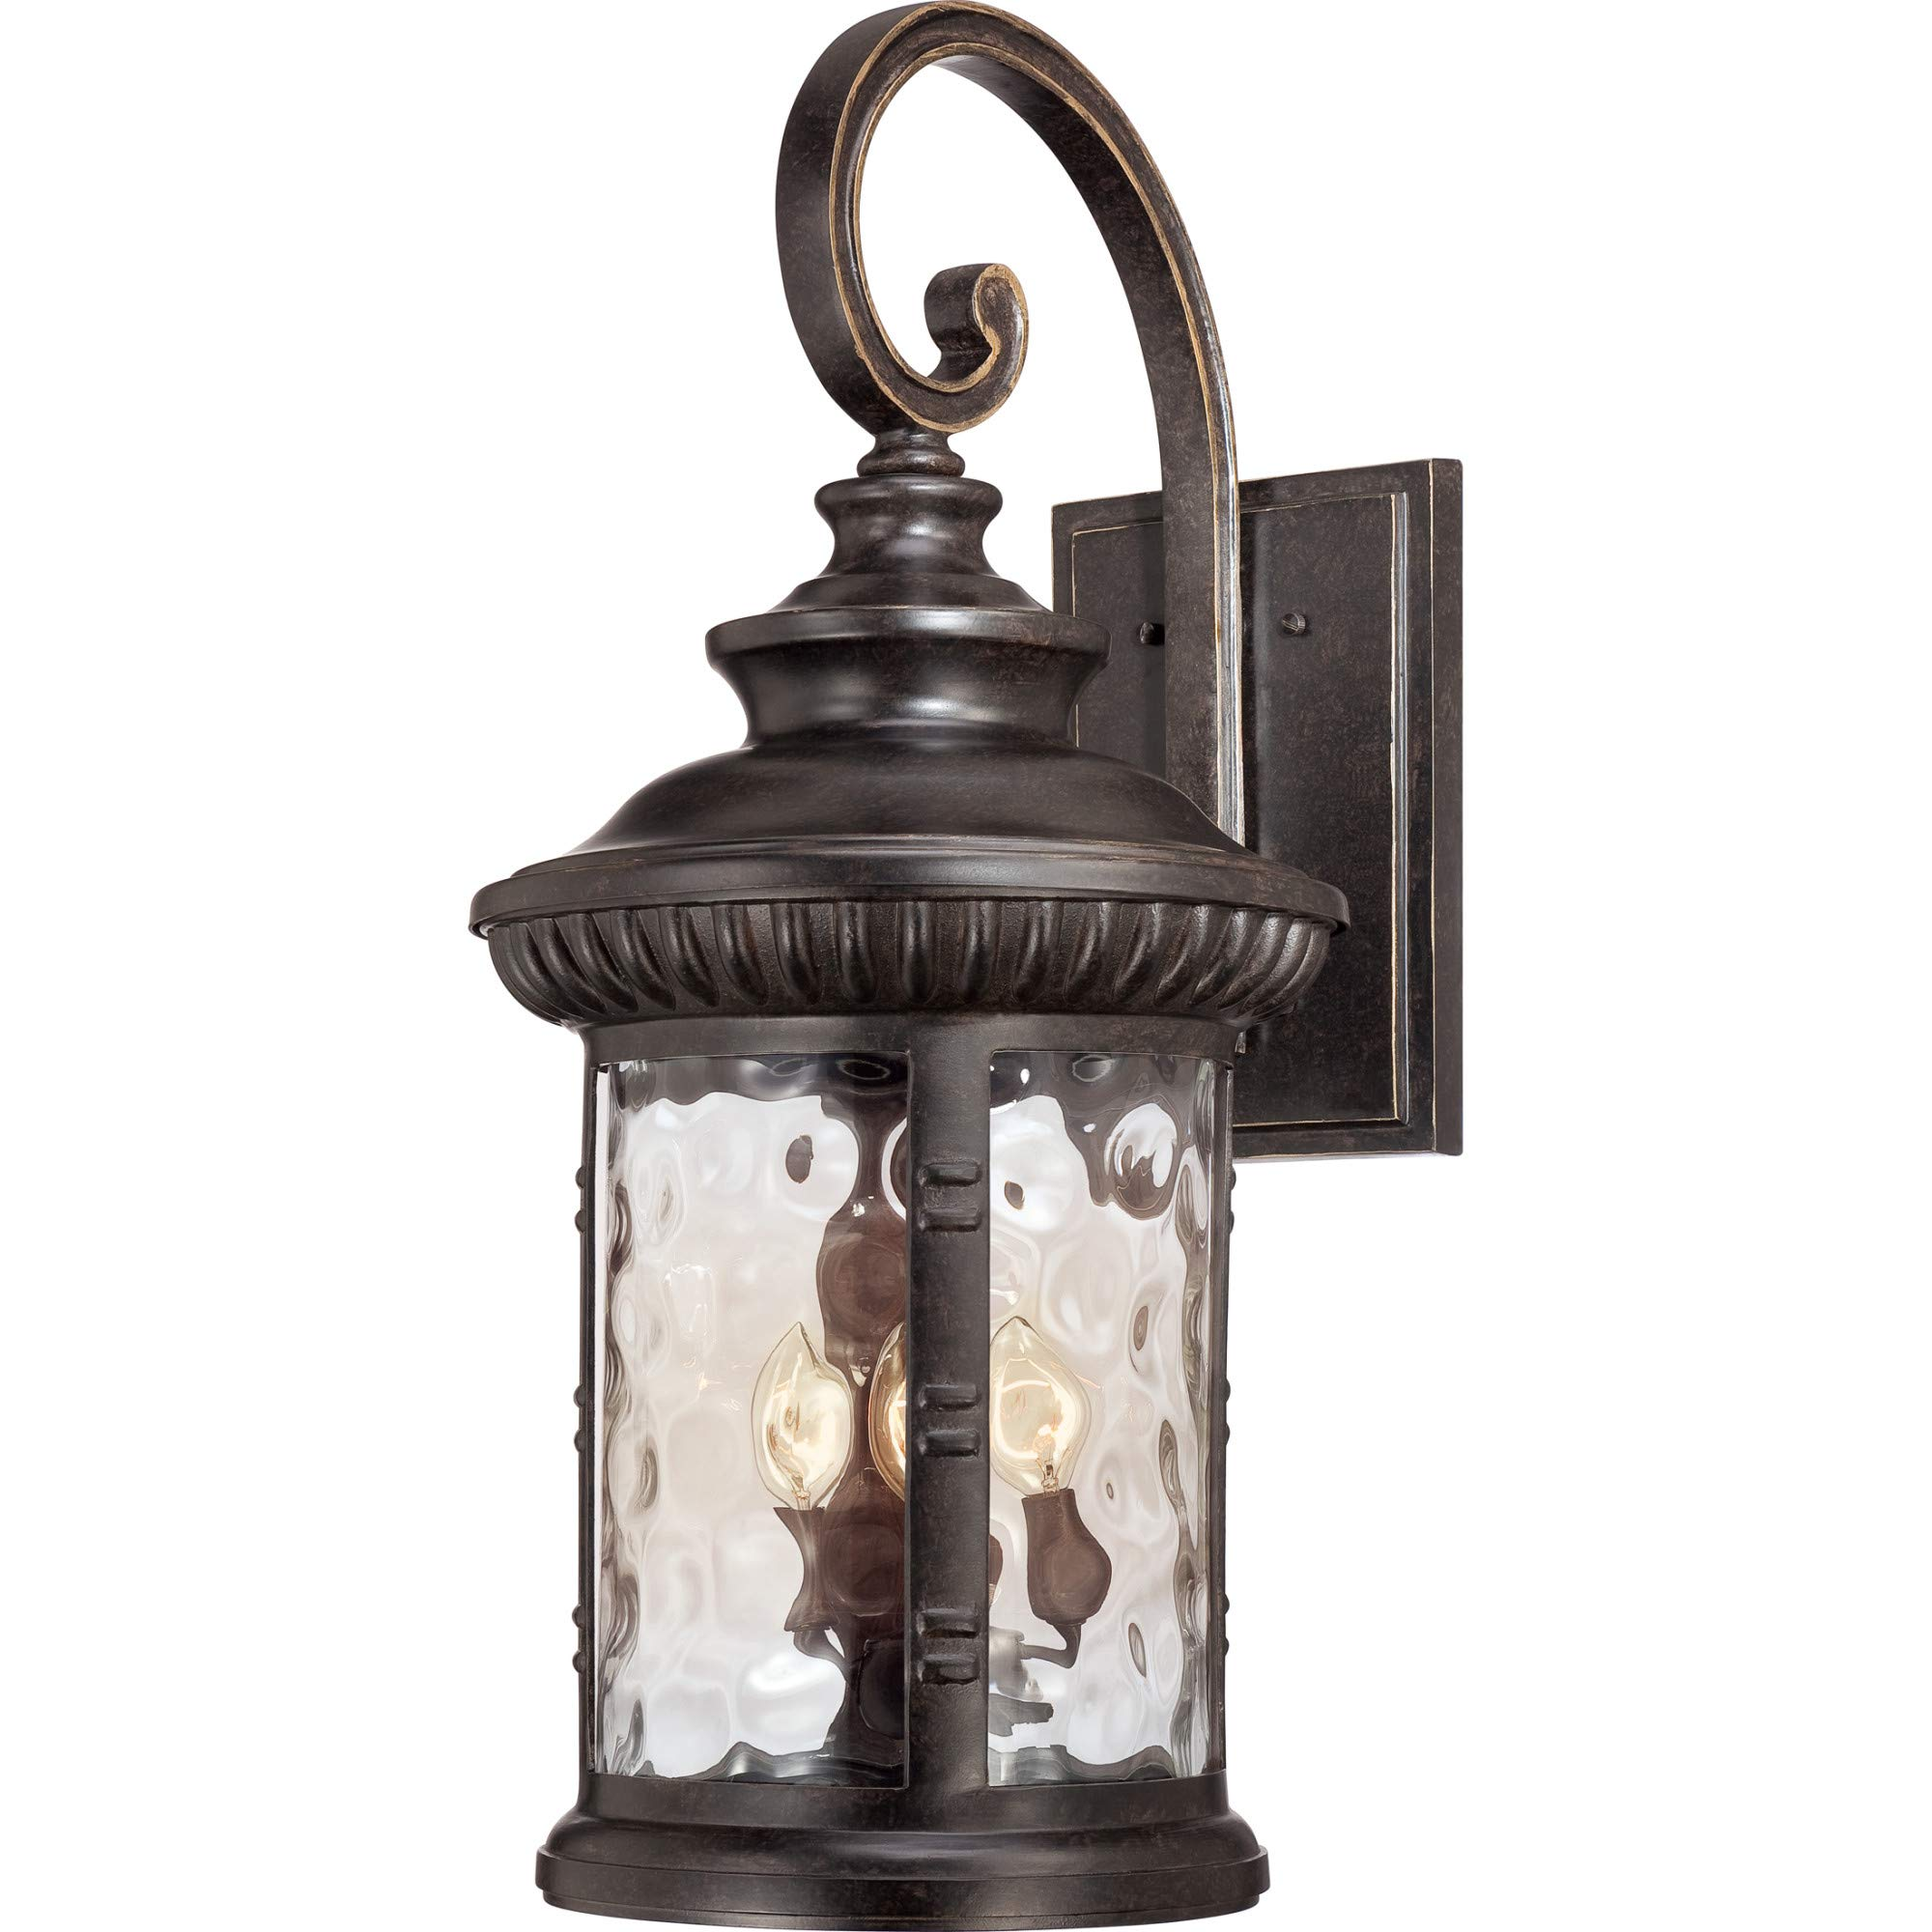 Quoizel CHI8413IB Four Light Outdoor Wall Tabletop Lanterns Extra Large Imperial Bronze